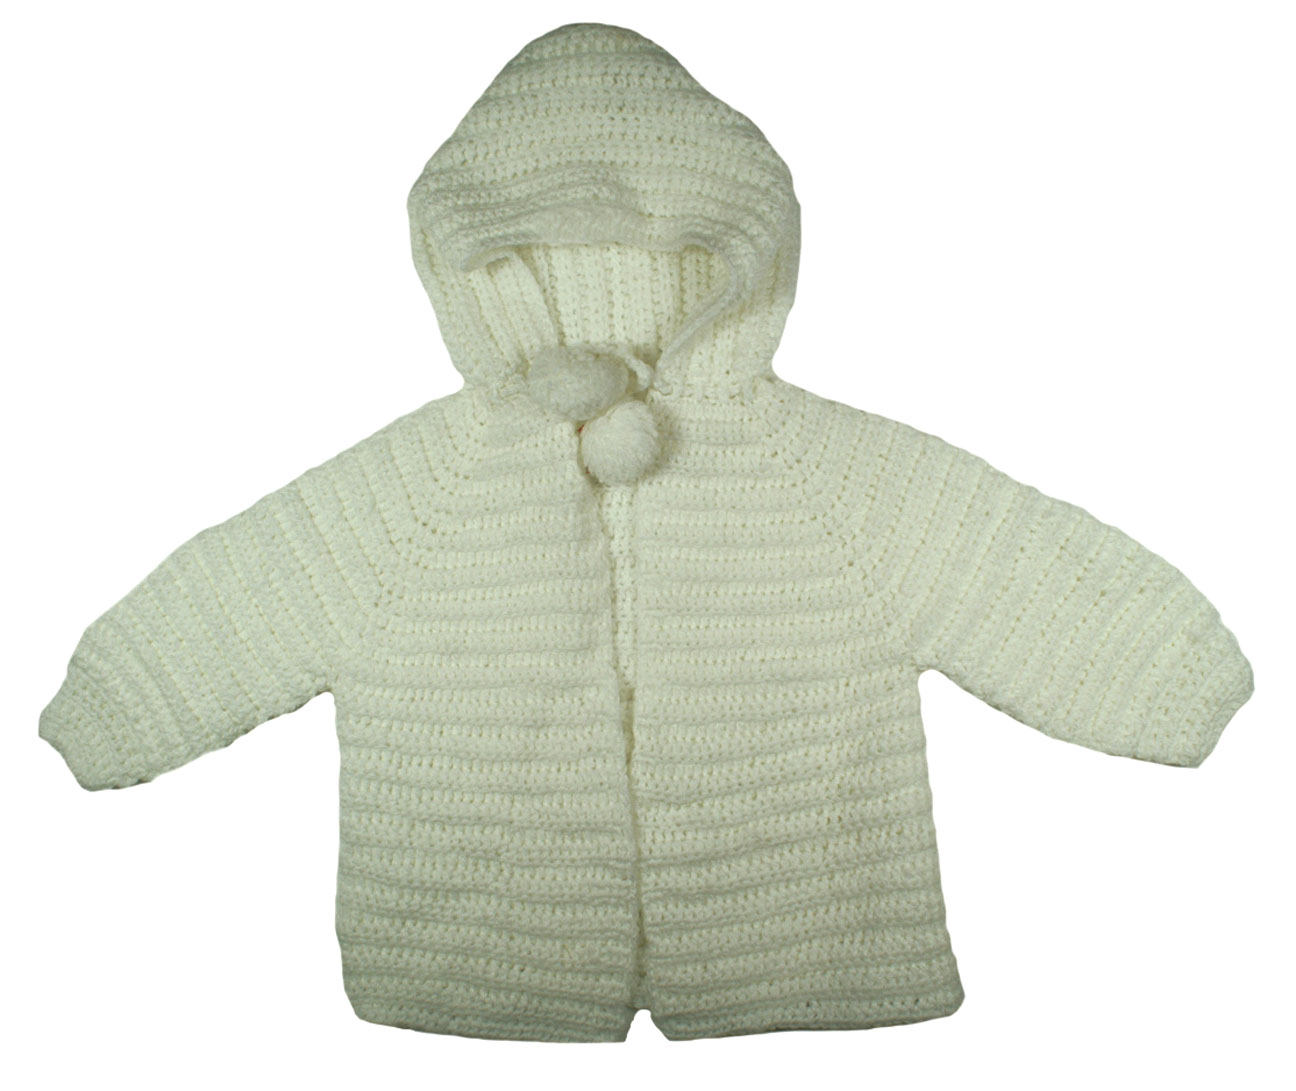 24592f4e8 NEW White Hand Knit Hooded Sweater and Booties Set